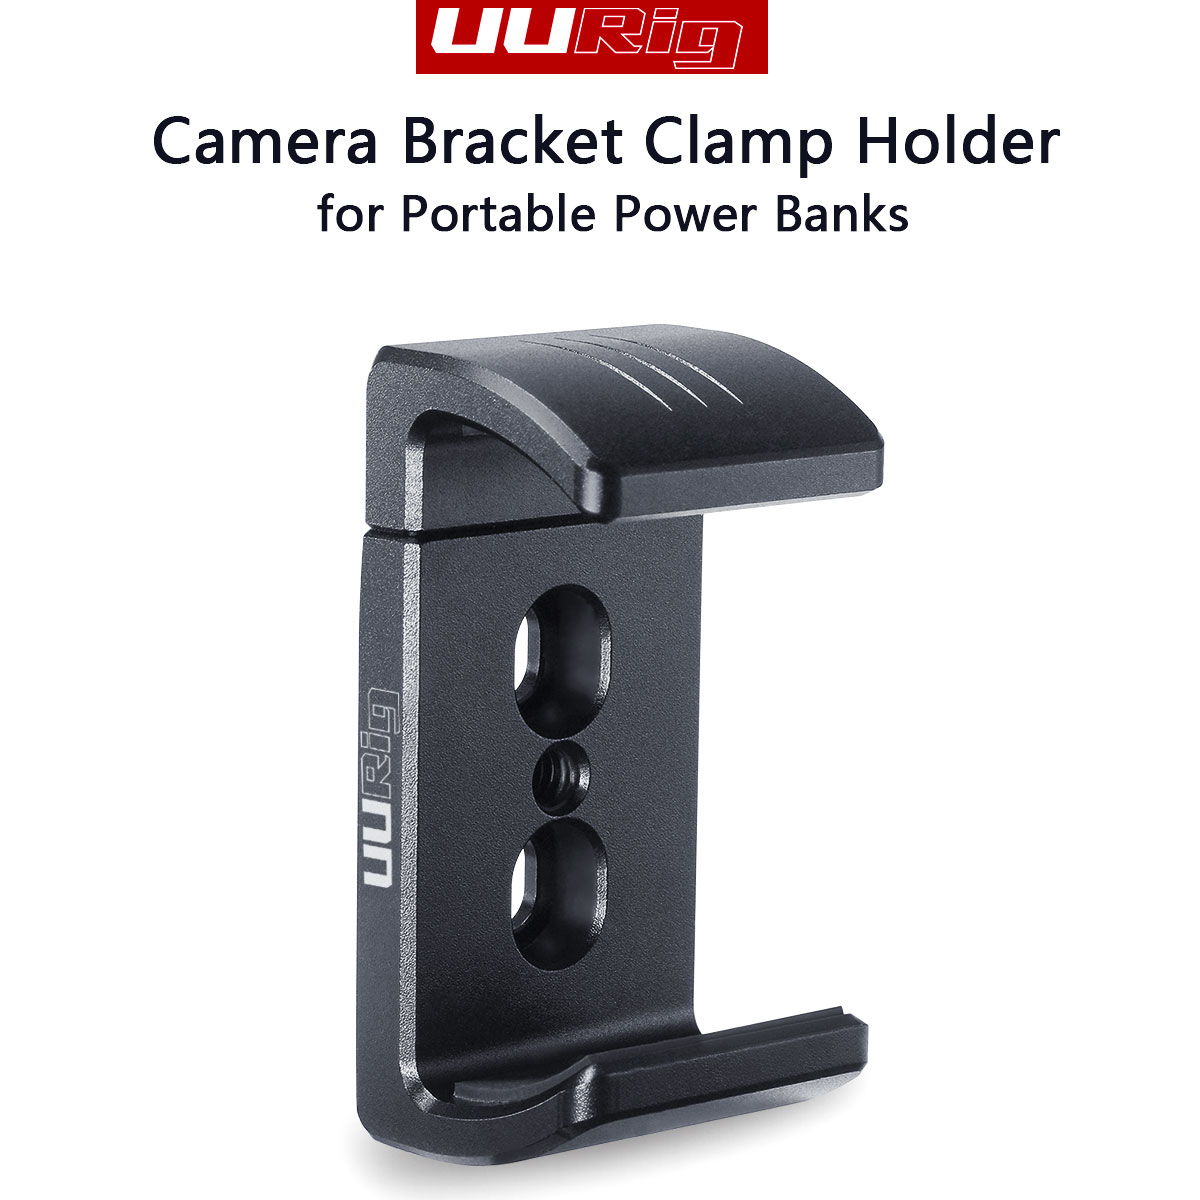 UURig R010 Power Bank DSLR Camera Cage Bracket Clamp Holder Portable Aluminum Alloy Mobile Phone Extendable Clip With 1/4 Screw